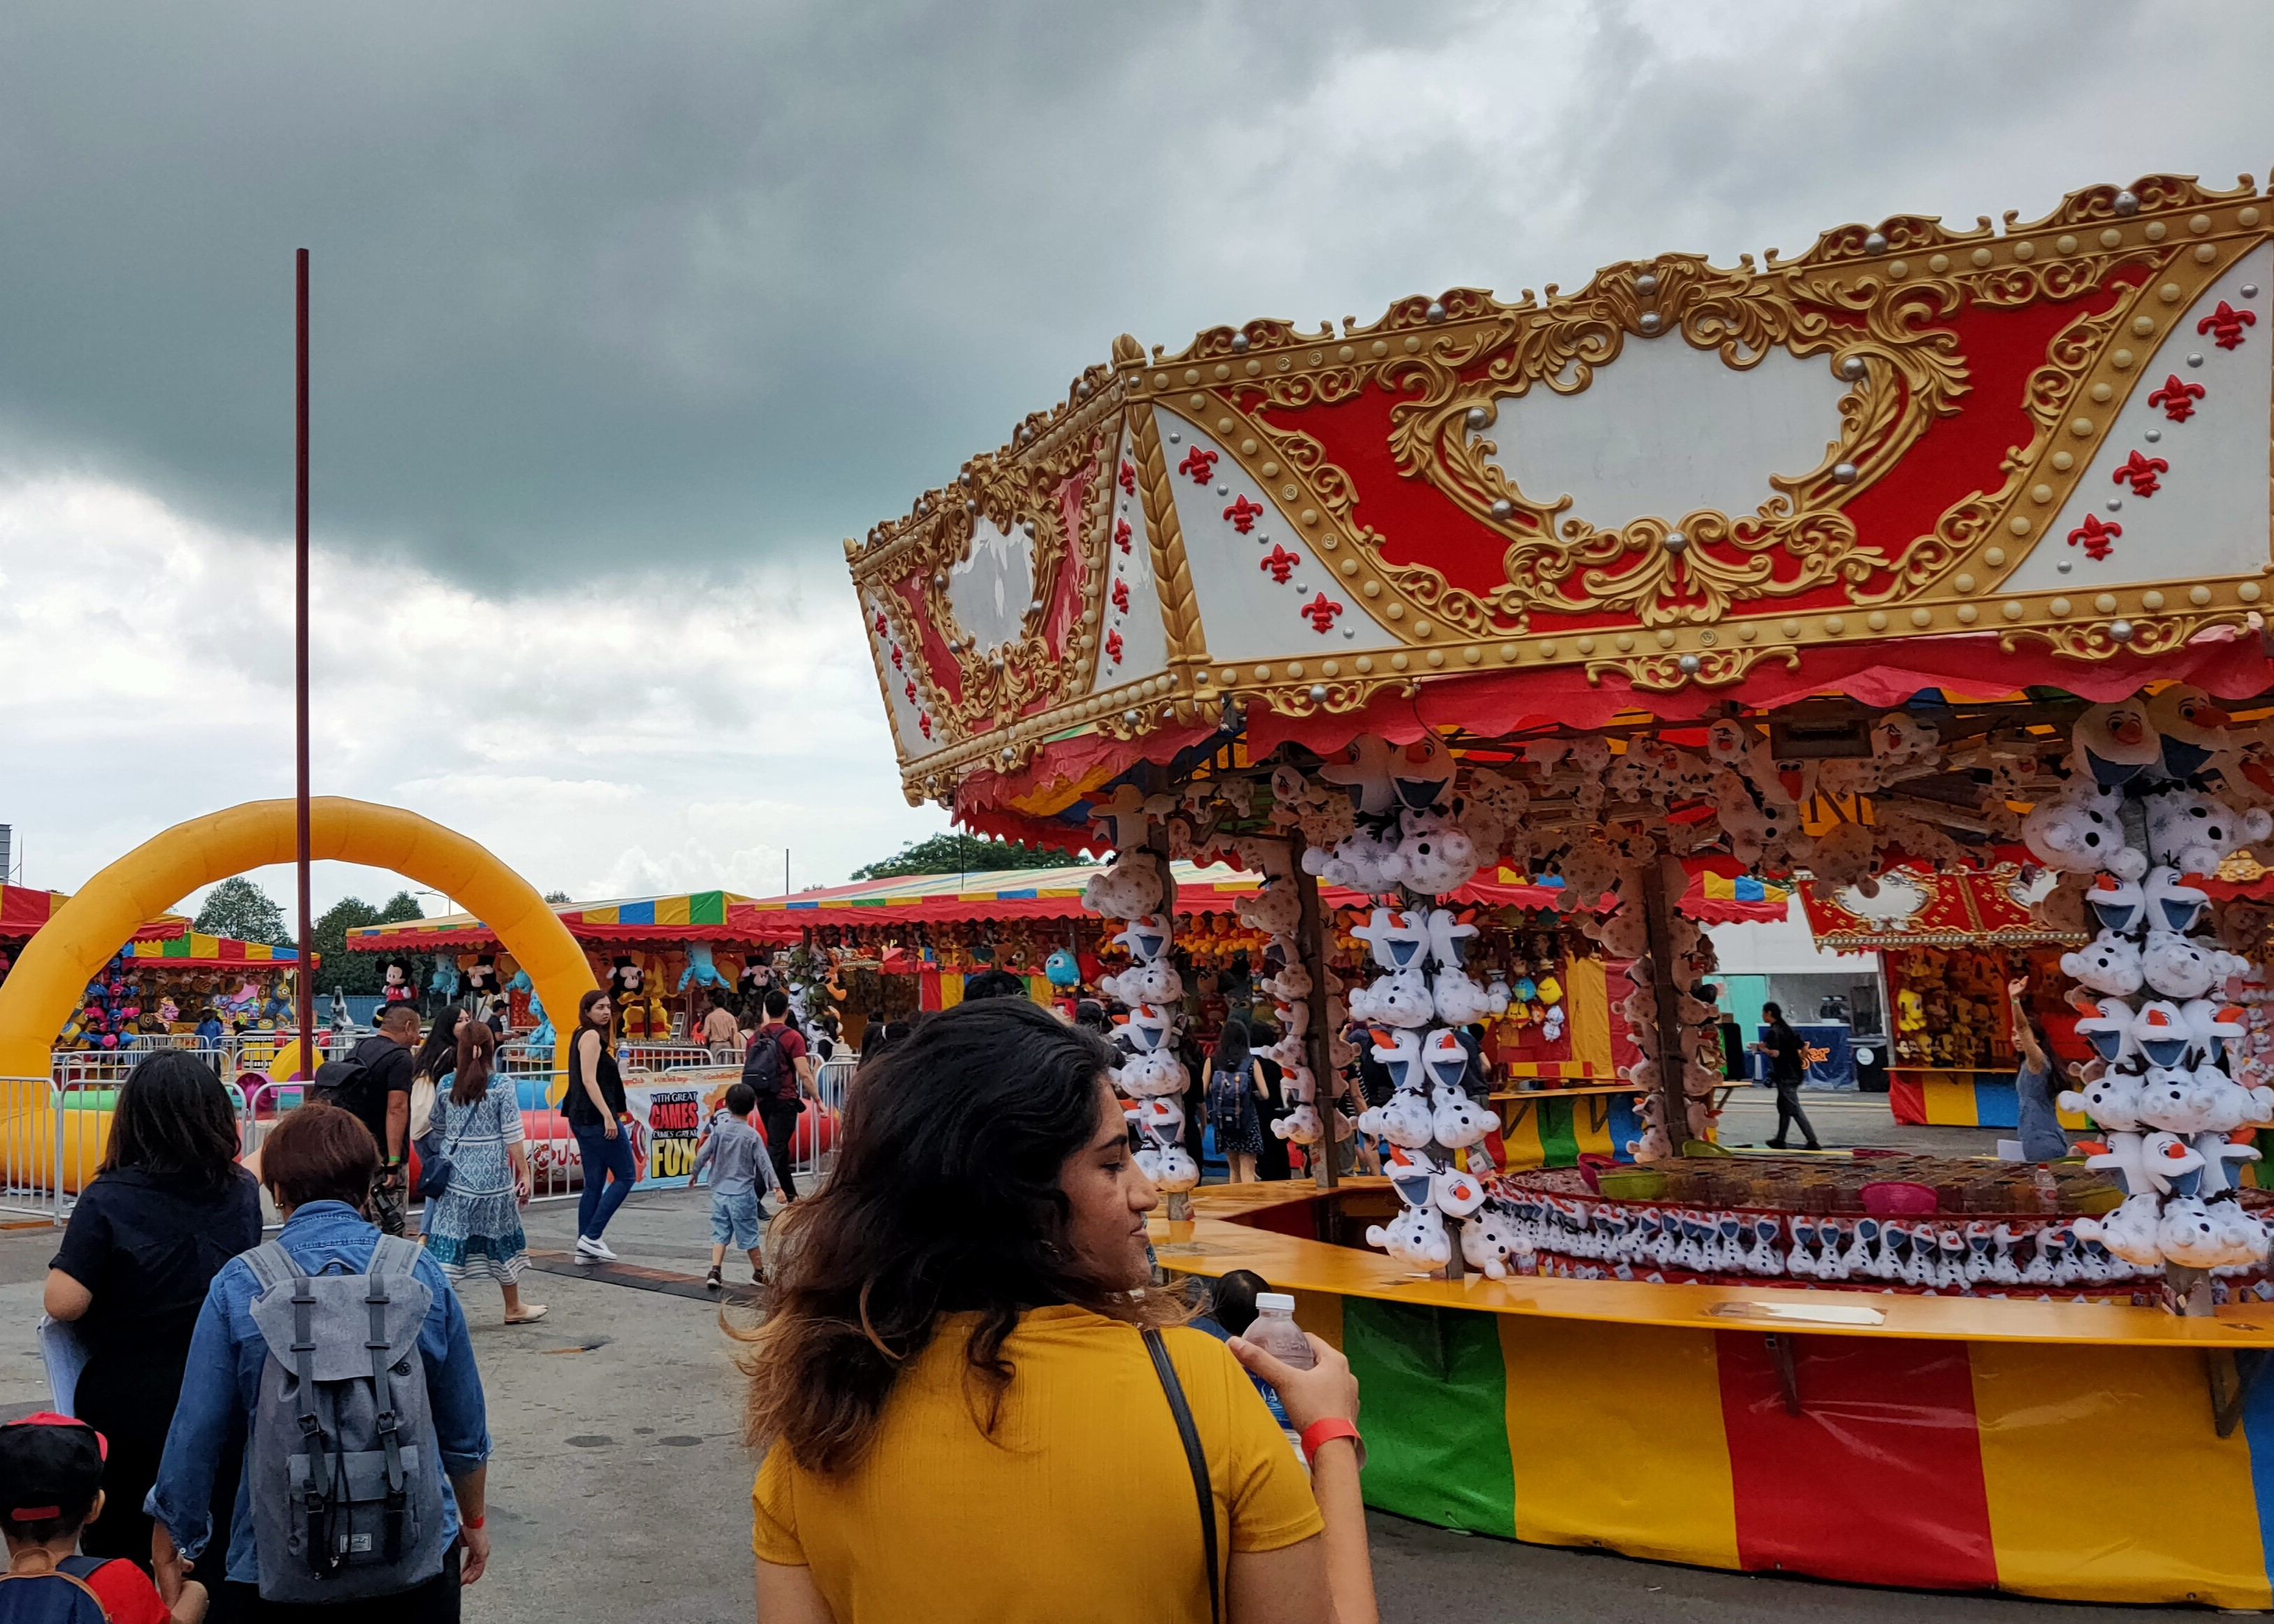 With over 50 stalls of street food and carnival games such as bumper cars, carousel, flying chairs where you can win all sizes of plush toys it makes for a fun family outing. Photo Credit: Connected to India